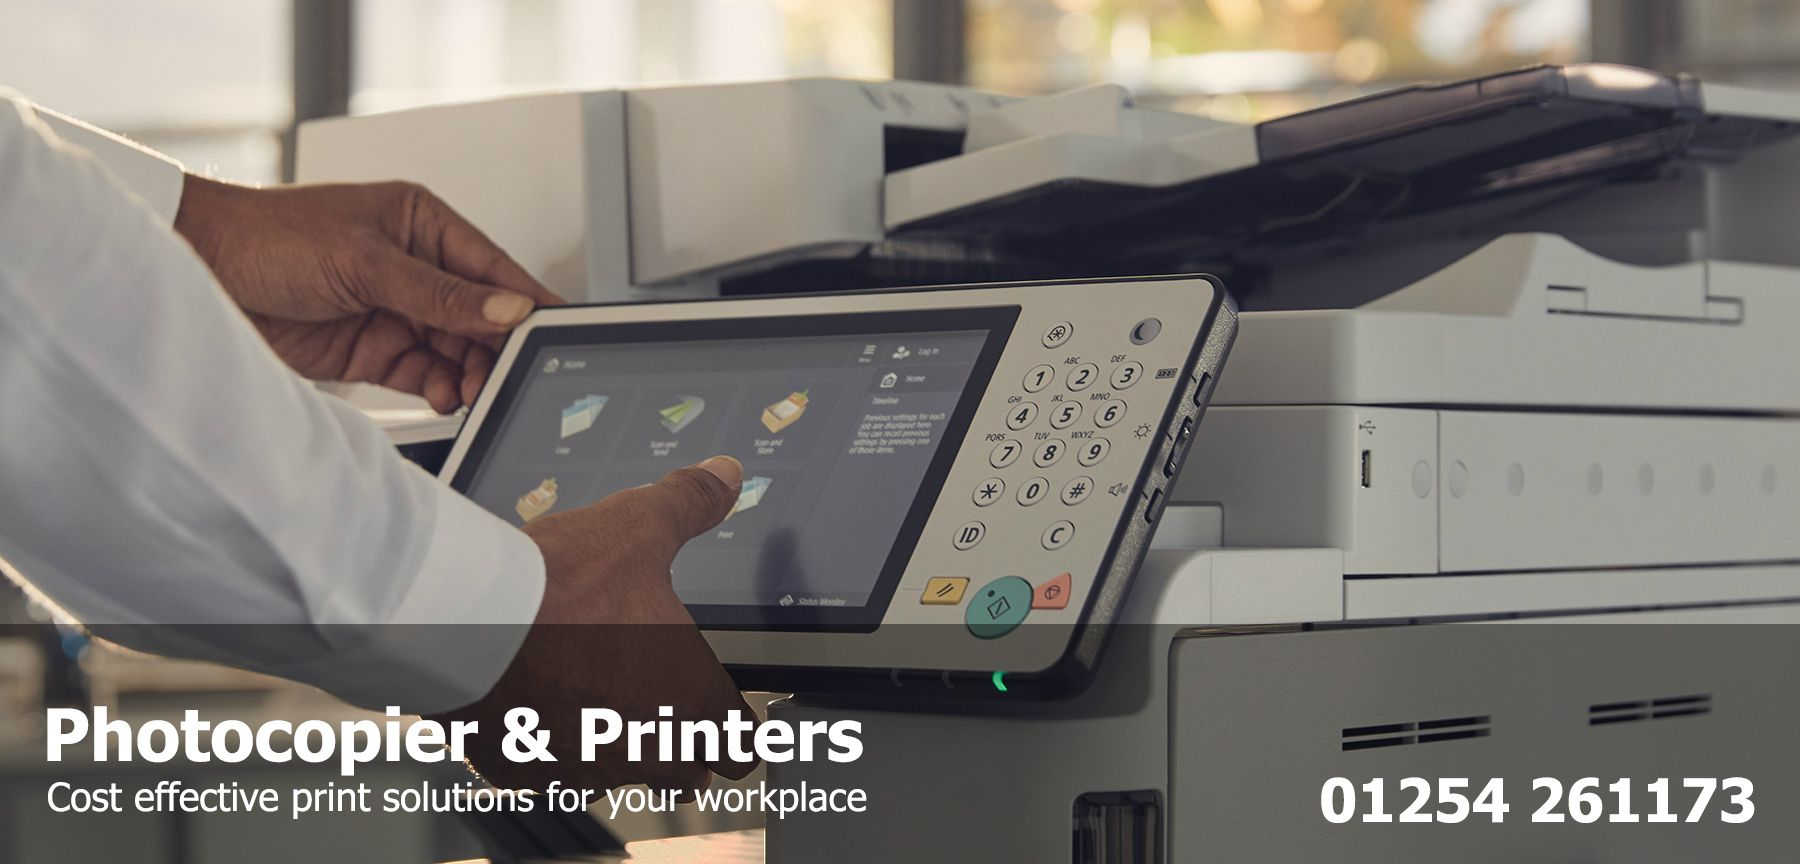 office photocopier supplier North West - photocopier lease rental printer cost per copy service contract